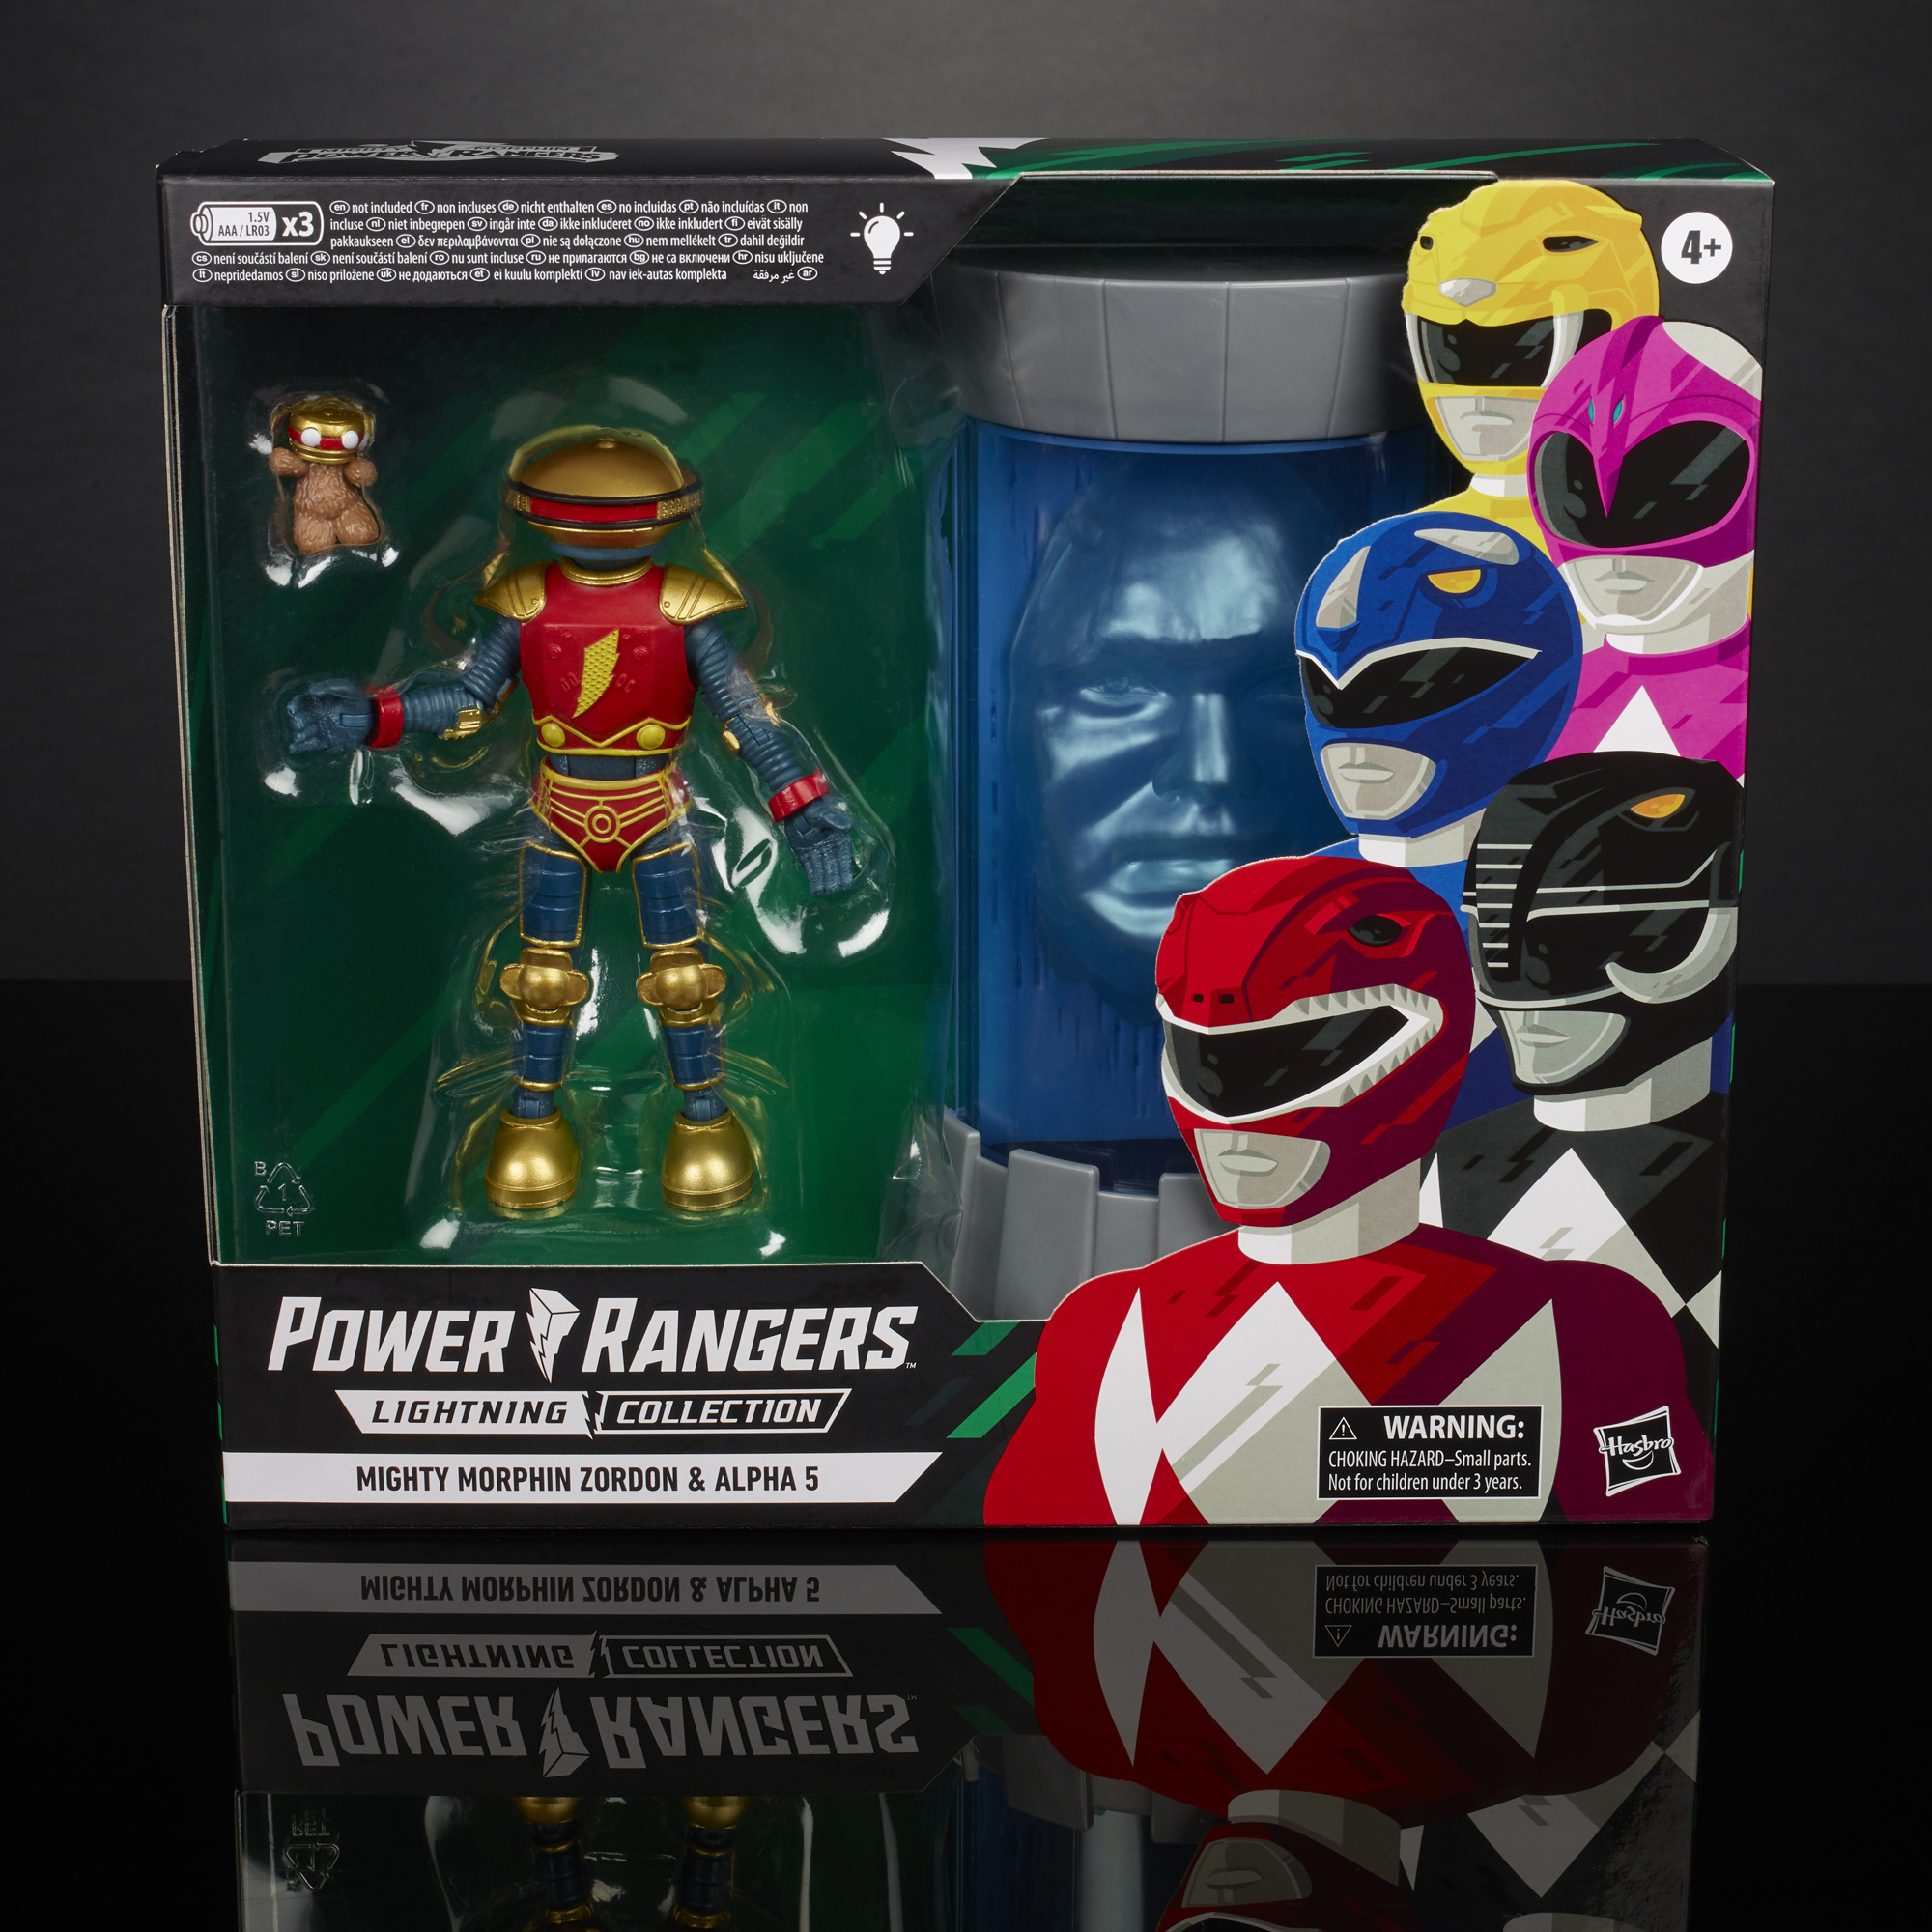 Power Rangers 2020 Lightning Collection MIGHTY MORPHIN ZORDON /& ALPHA 5 2-Pack